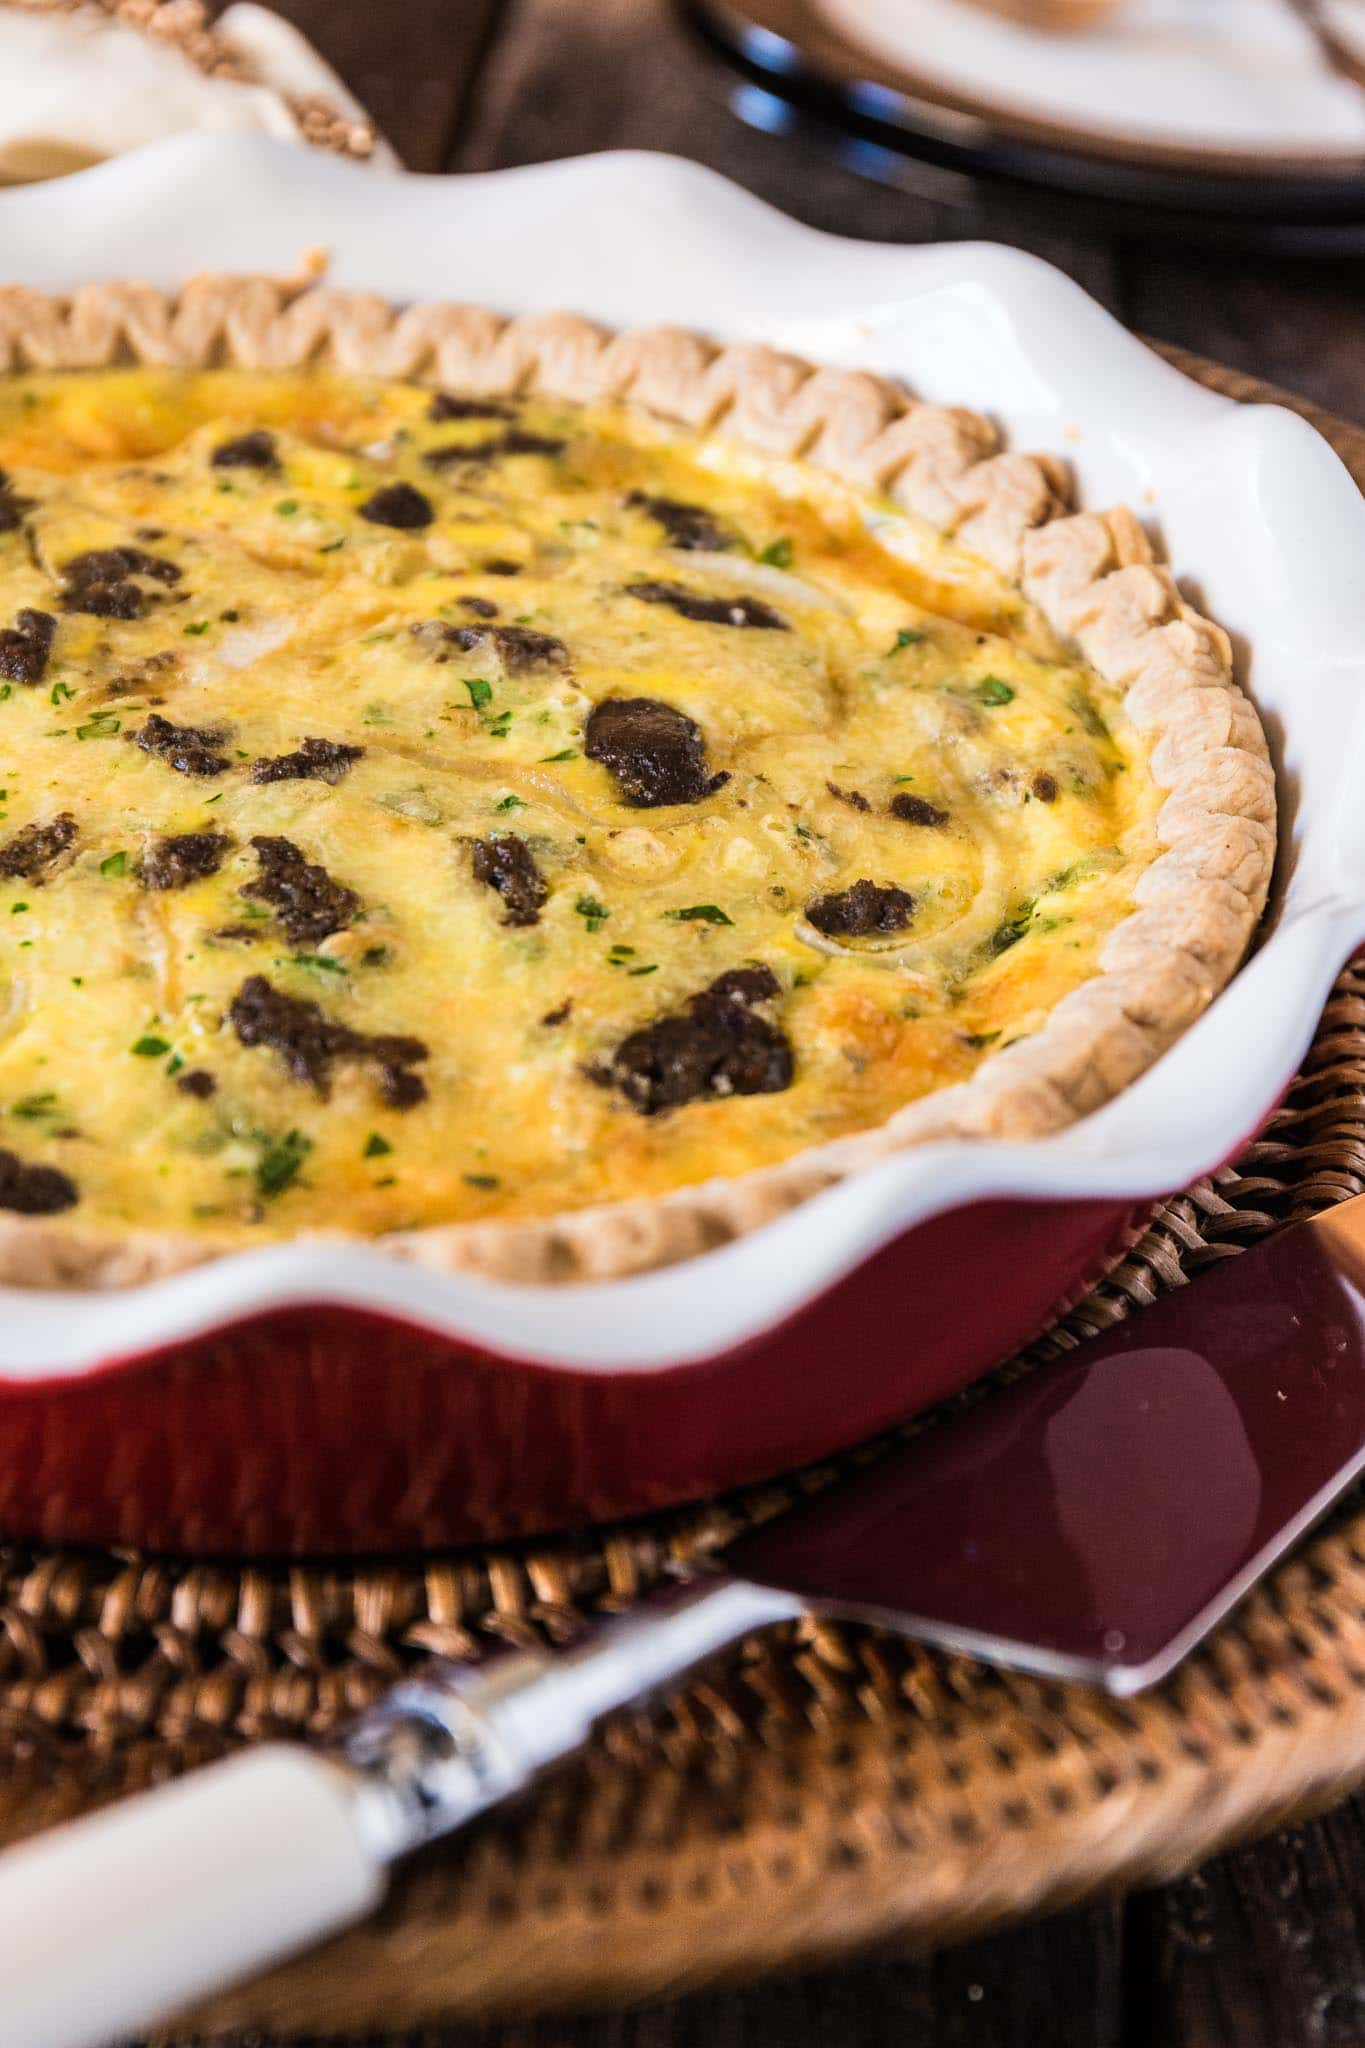 Turkey Sausage and Smoked Gouda Quiche | www.oliviascuisine.com | Easy and delicious, this Turkey Sausage and Smoked Gouda Quiche is the perfect dish for when you need to come up with something special for a last minute casual gathering, like breakfast or brunch with friends.